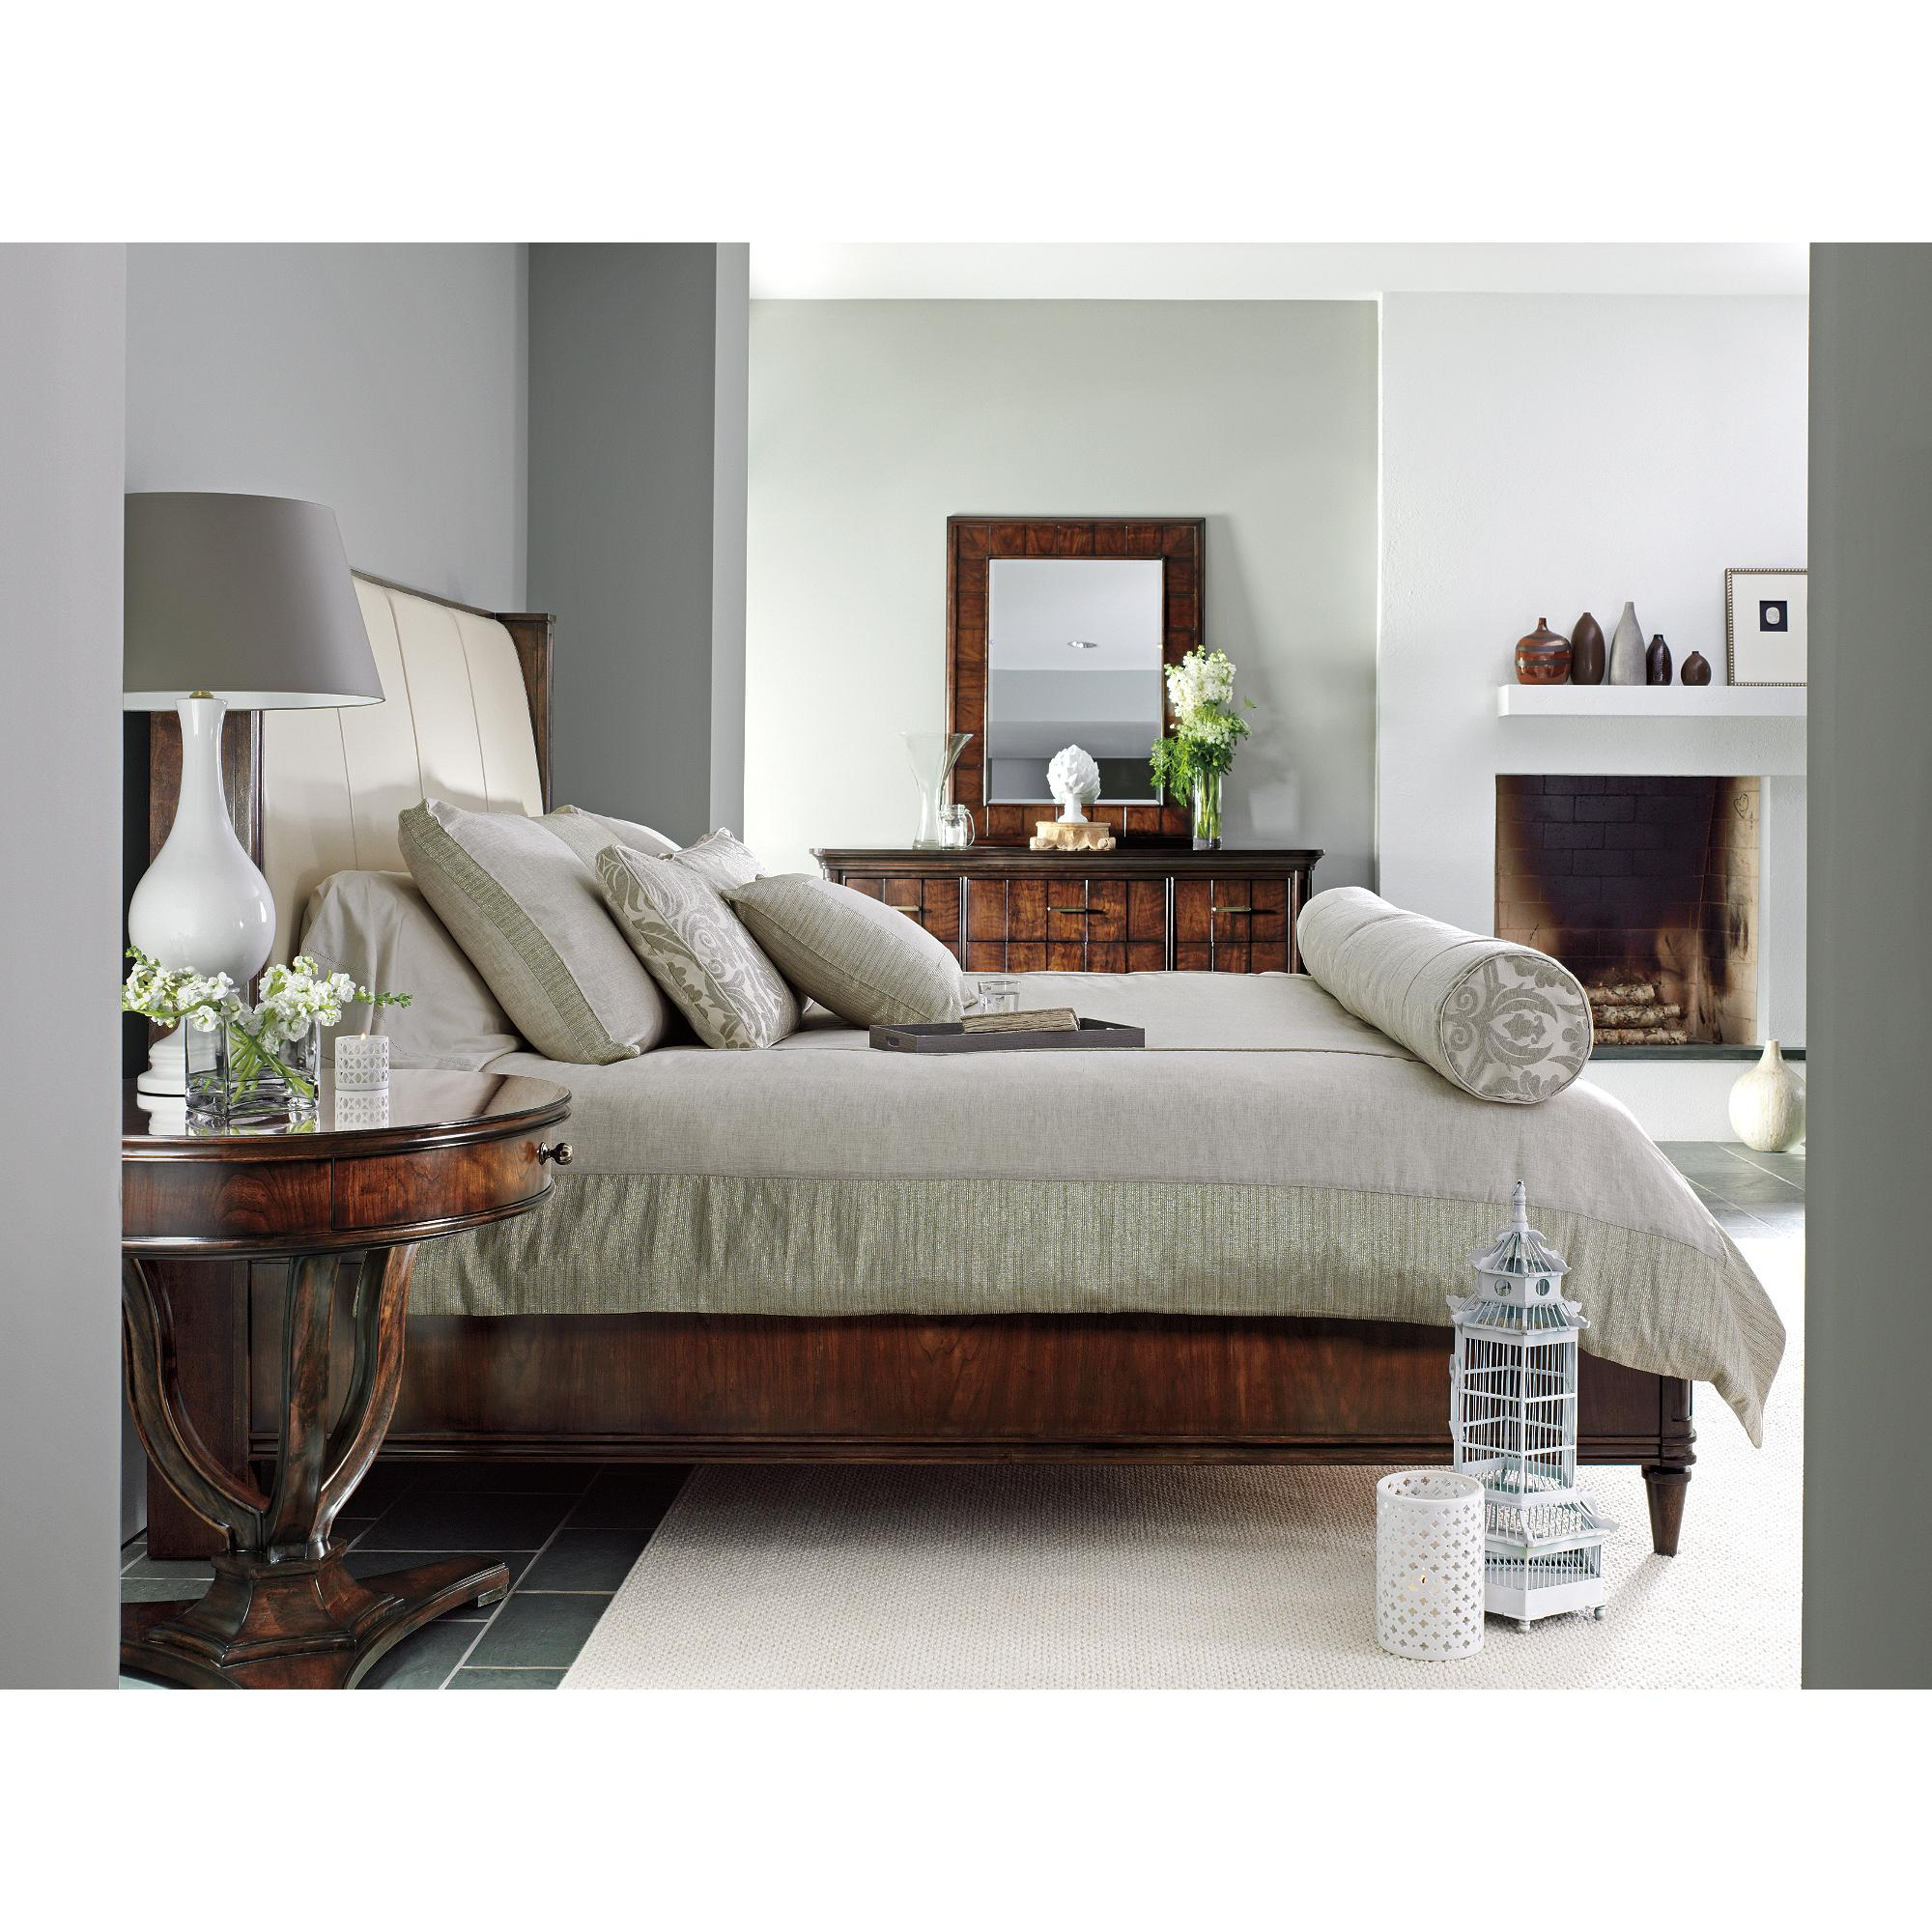 Stanley Furniture Avalon Heights Queen Bedroom Group - Item Number: 193 Q Bedroom Group 1